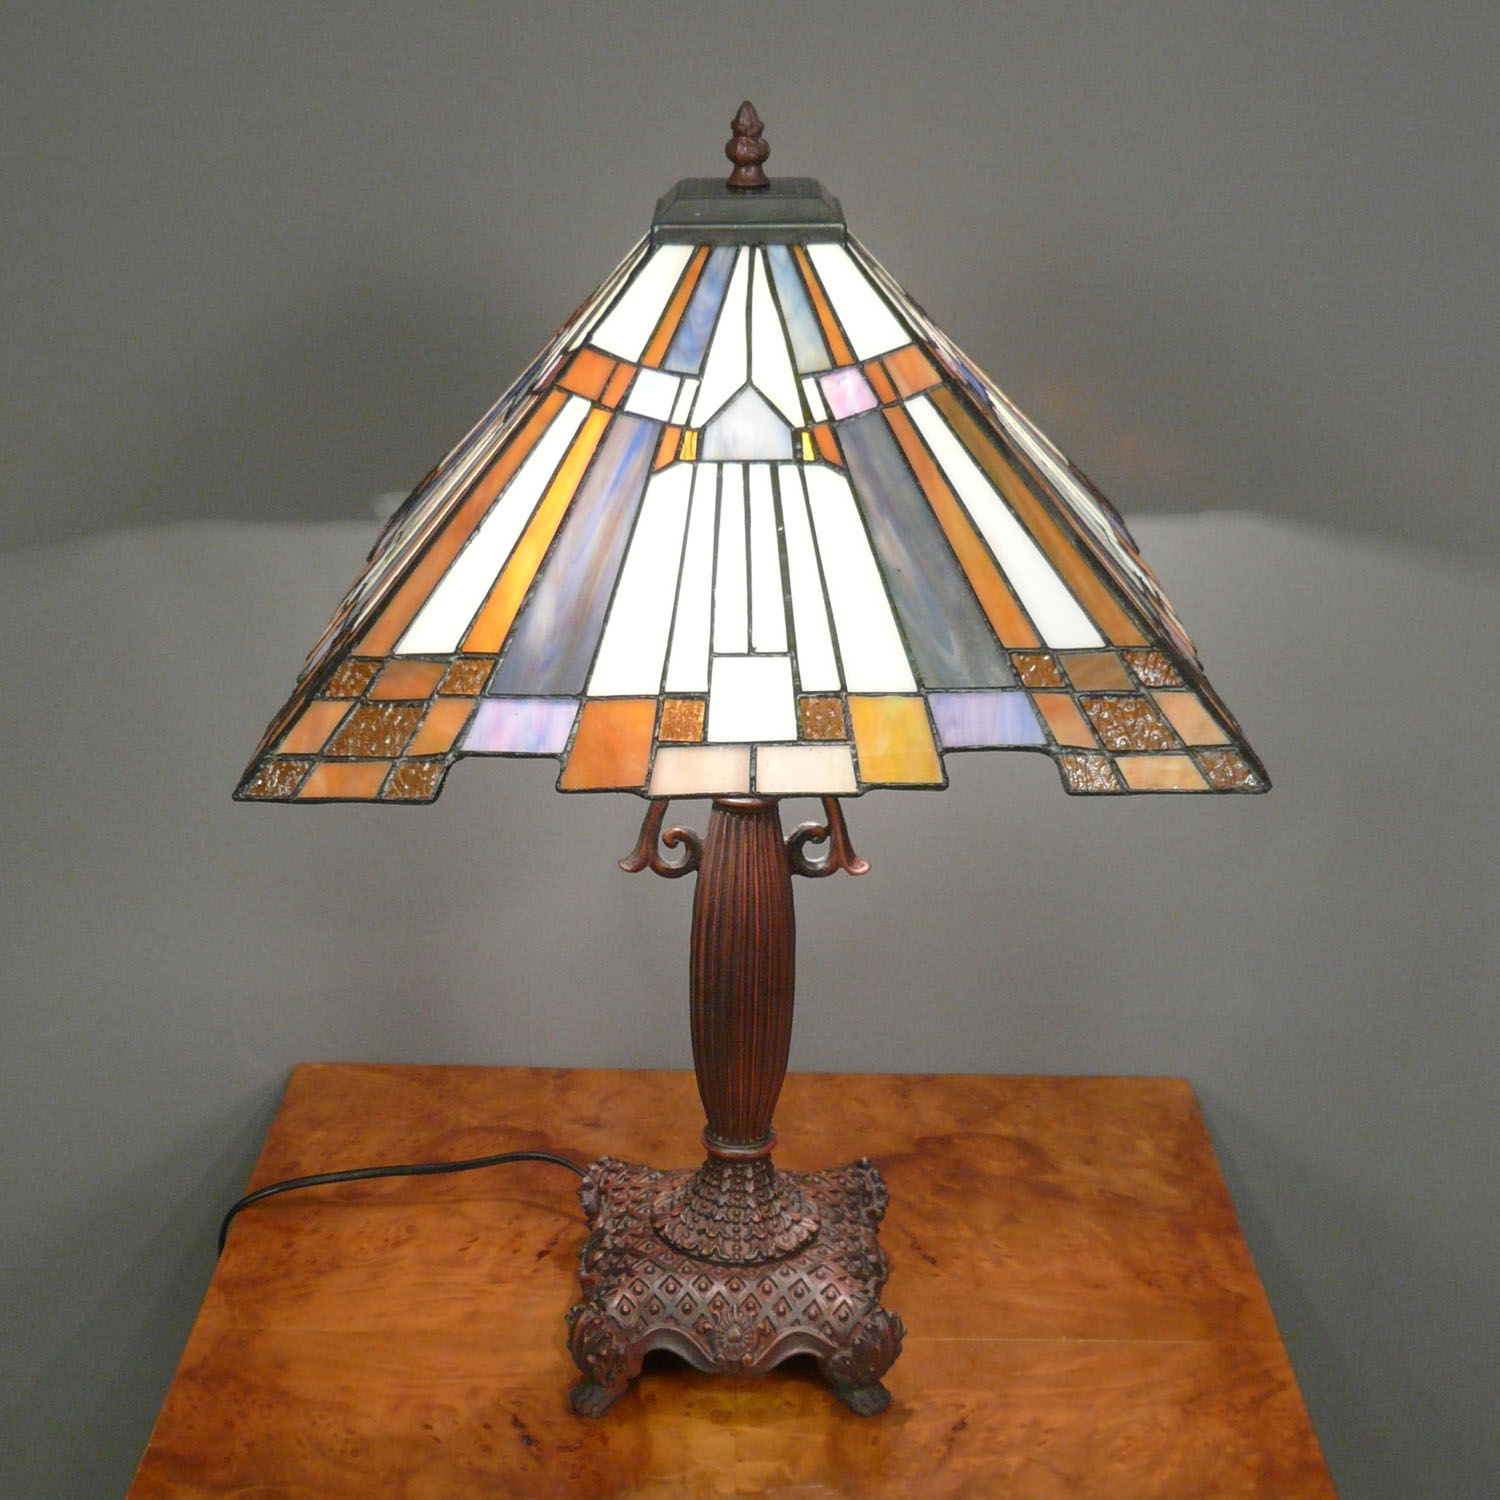 Tiffany lamp art deco lamps floor chandelier